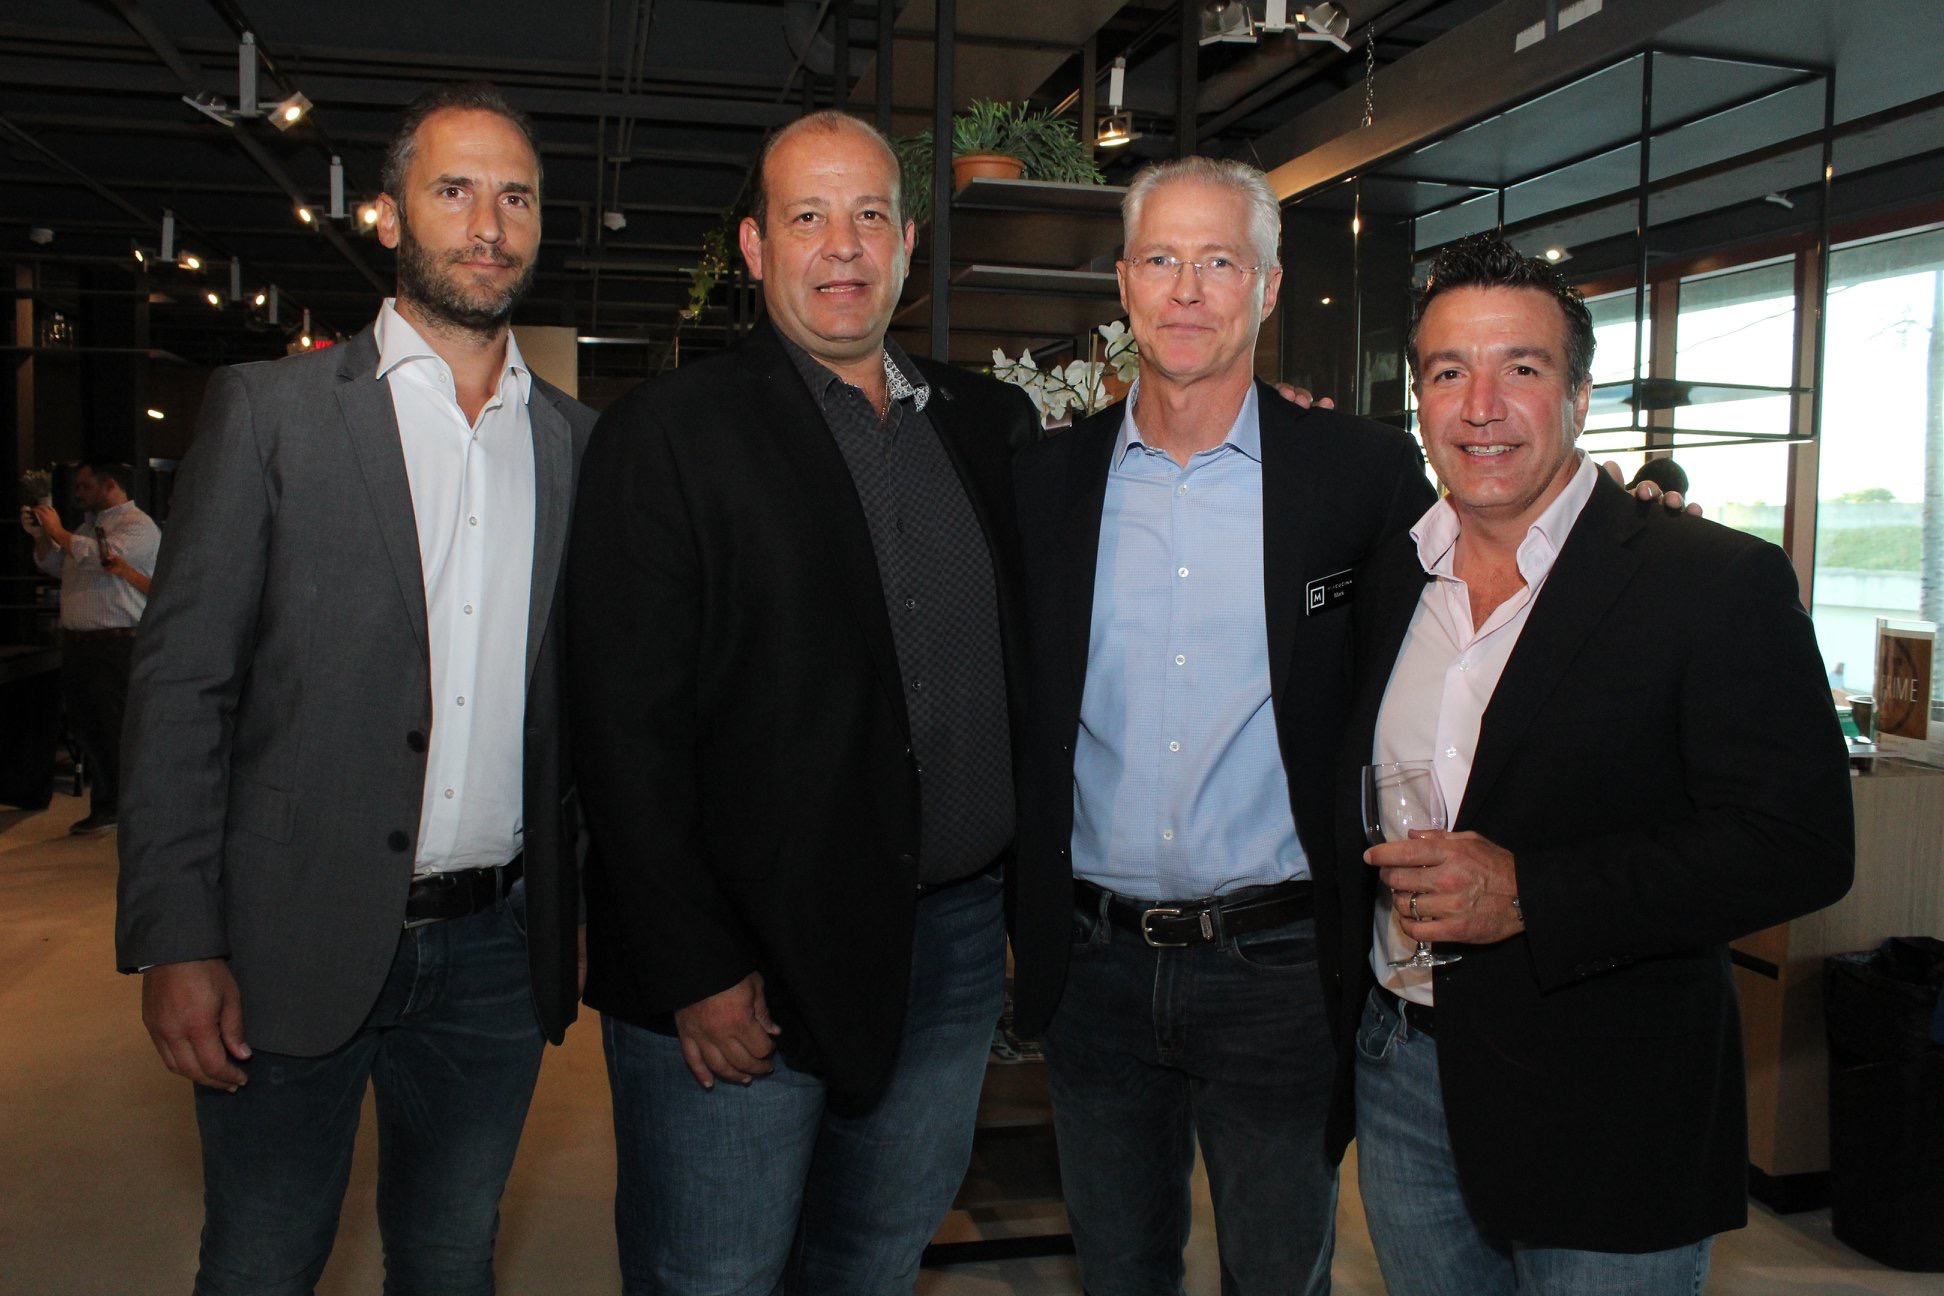 From left, Ariel Wainer, Javier Wainer, Mark Murphy and Reynaldo Rouco